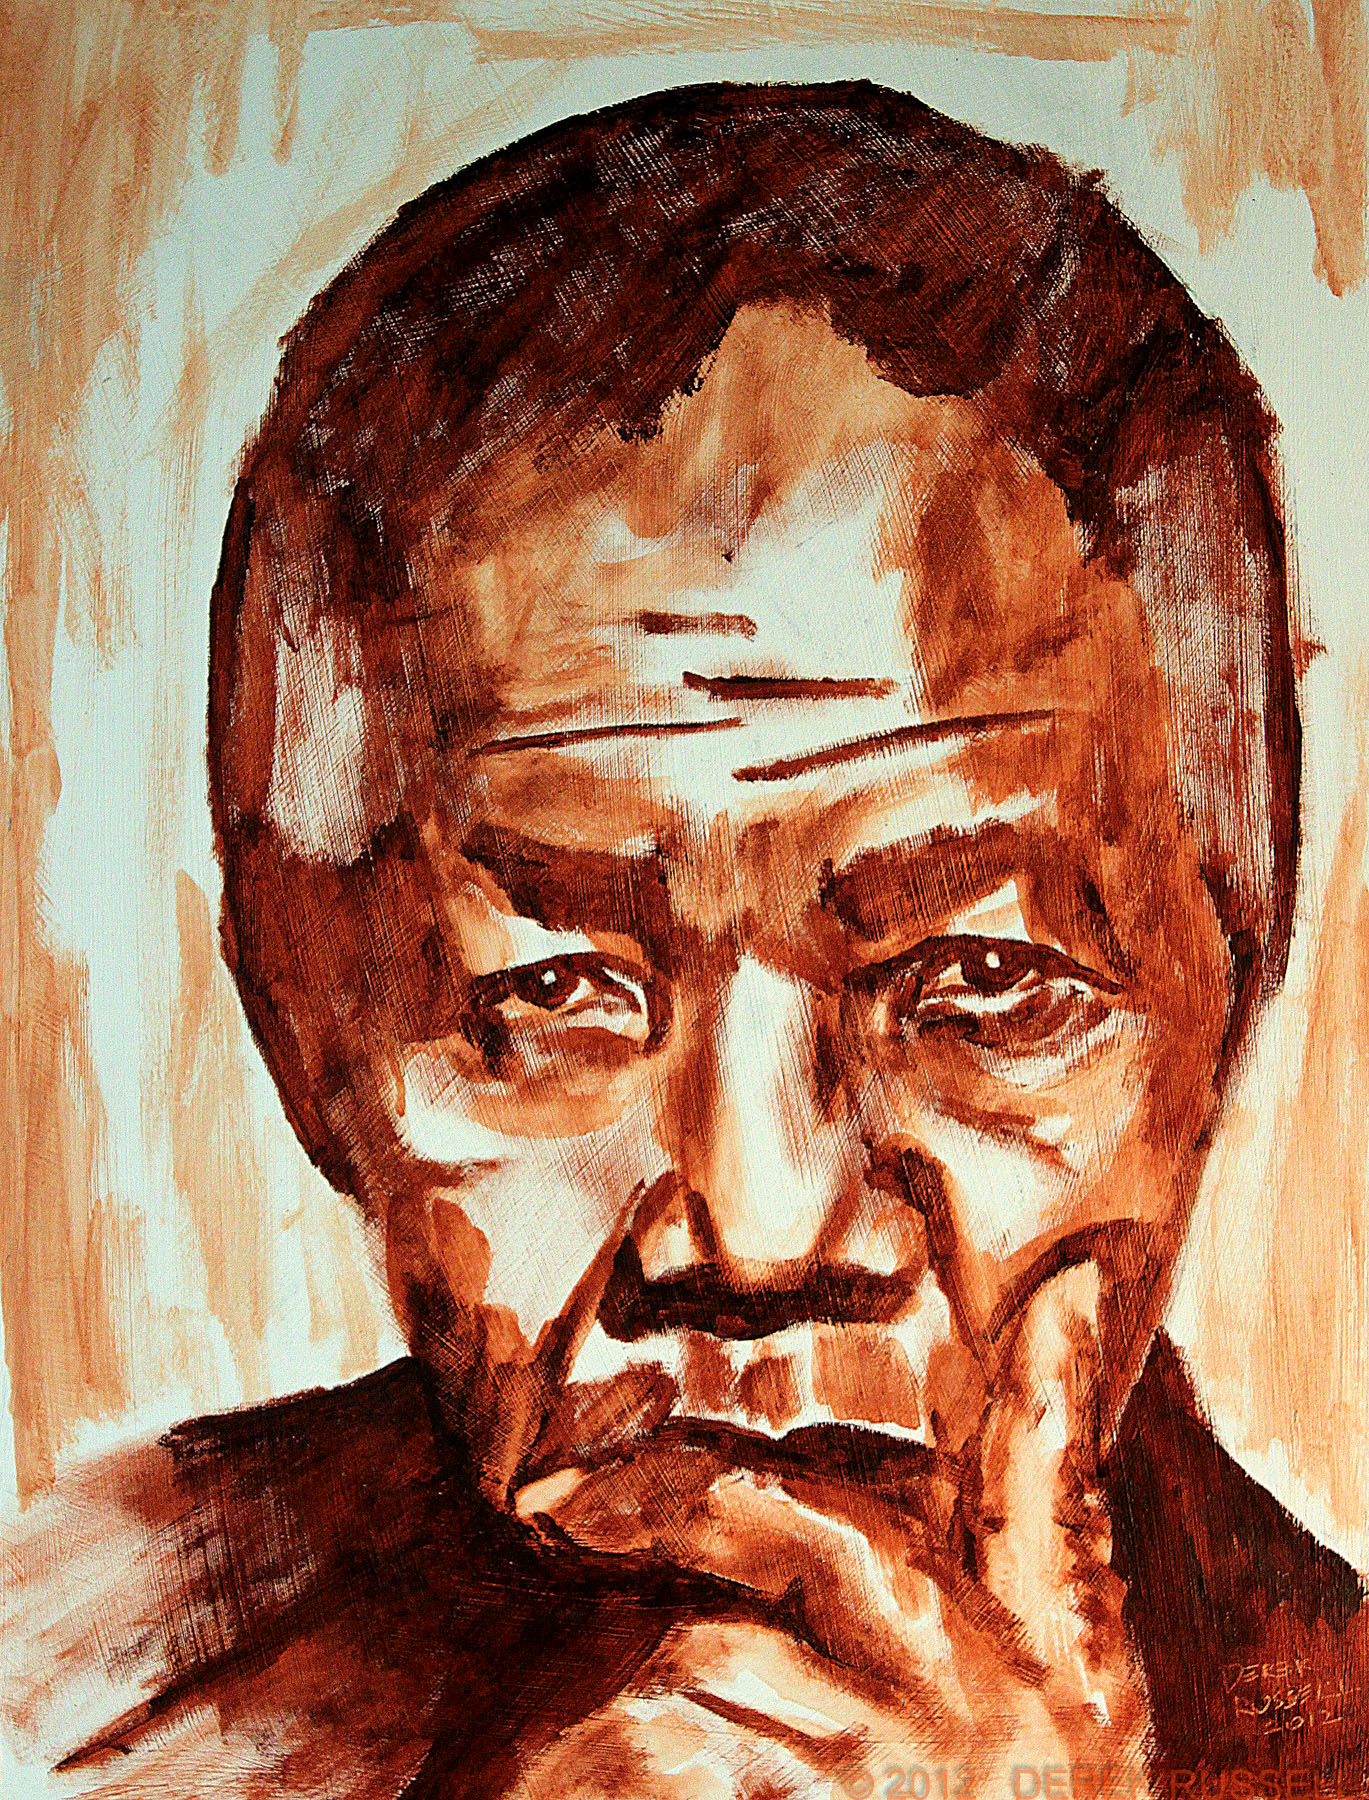 Nelson Mandela Original Oil and Acrylic Portrait Painting by Artist Derek Russell